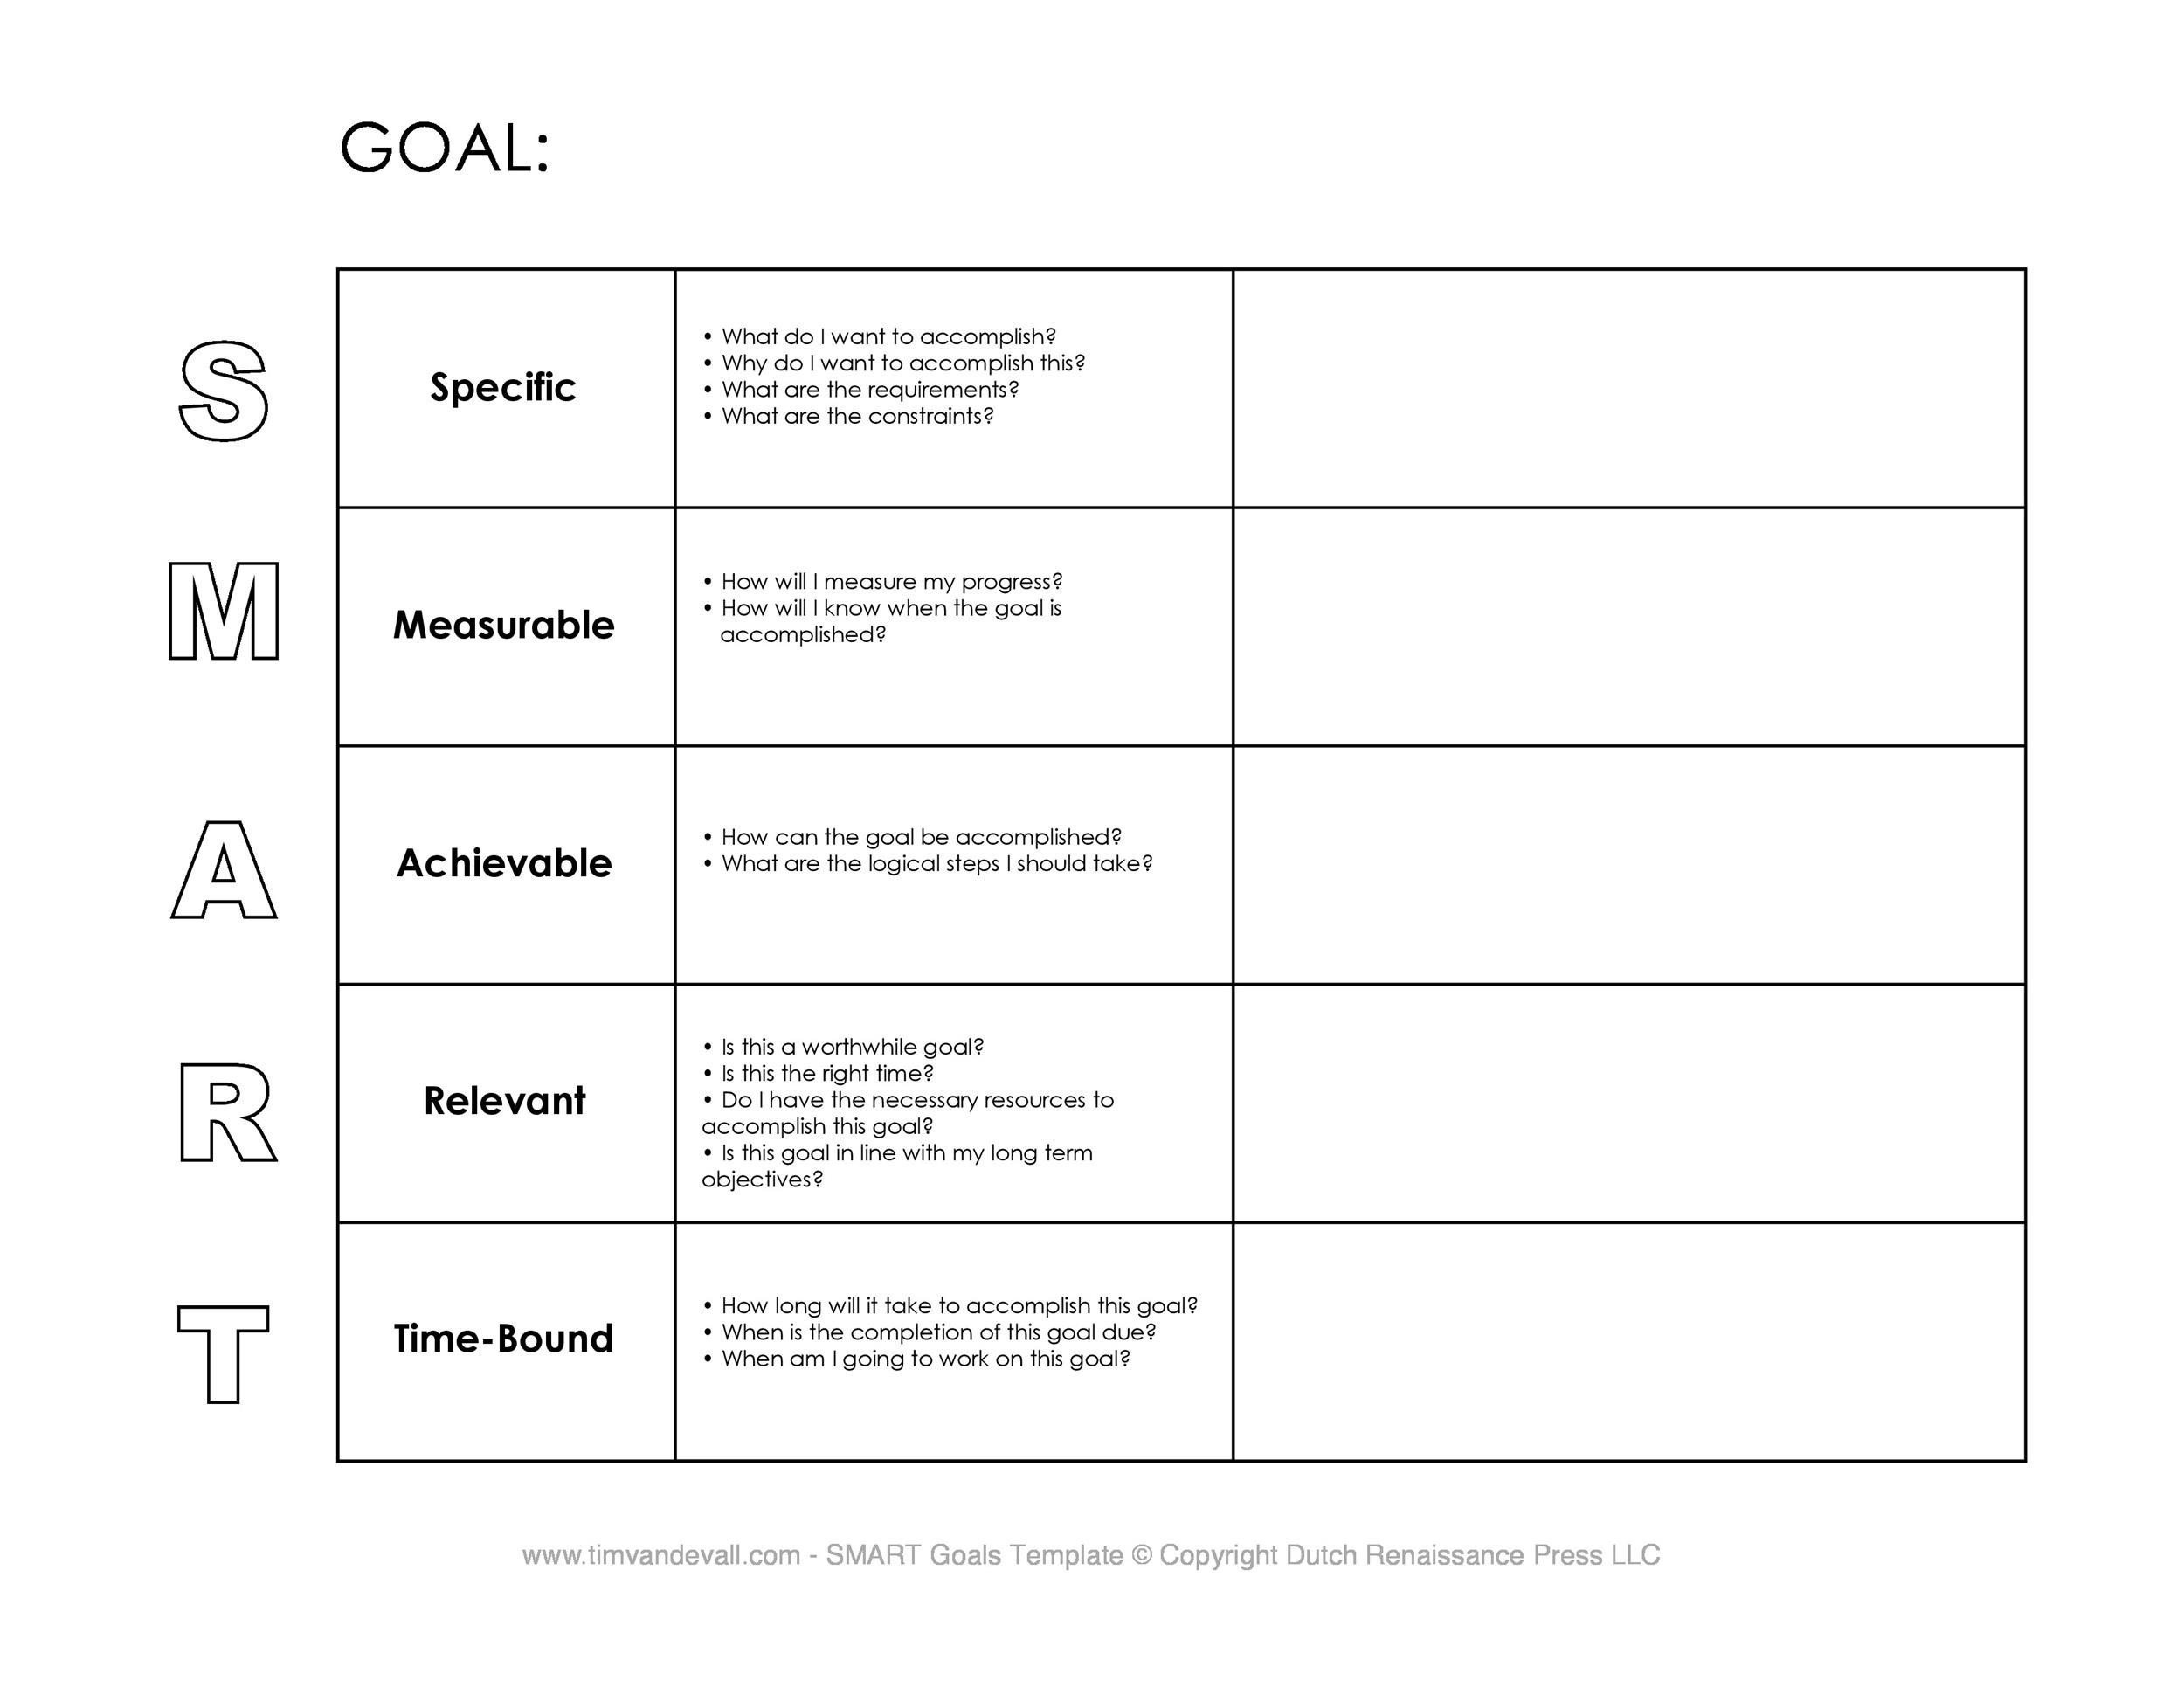 48 SMART Goals Templates, Examples \ Worksheets - Template Lab - smart goals template